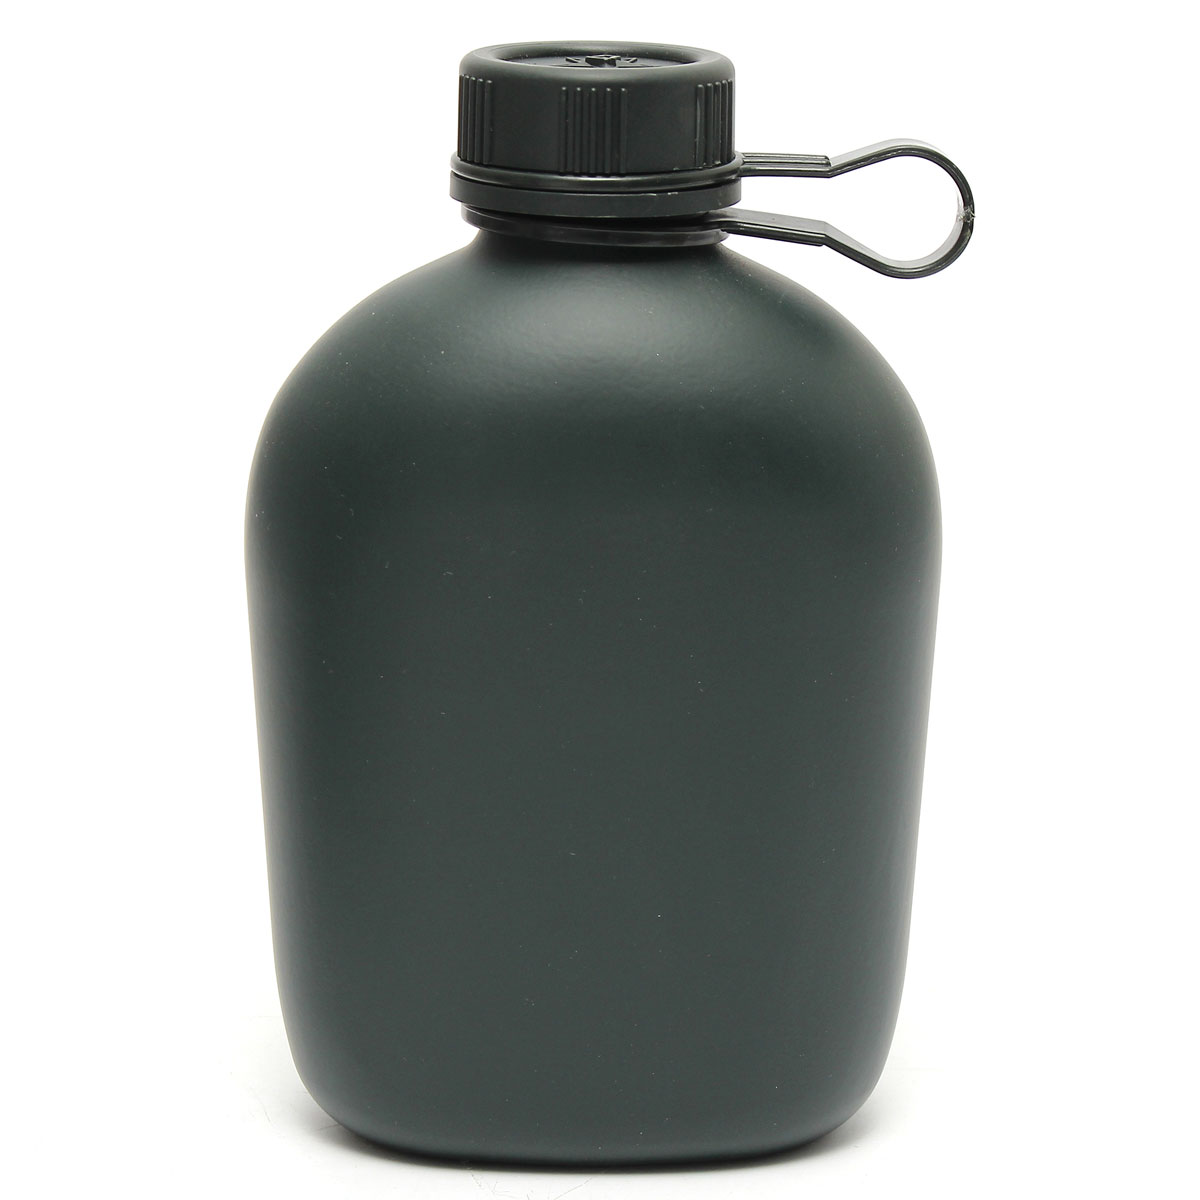 1L Military Tactical Water Bottle Kettle Army Camo Drinking Bottle For Camping Hiking Hunting